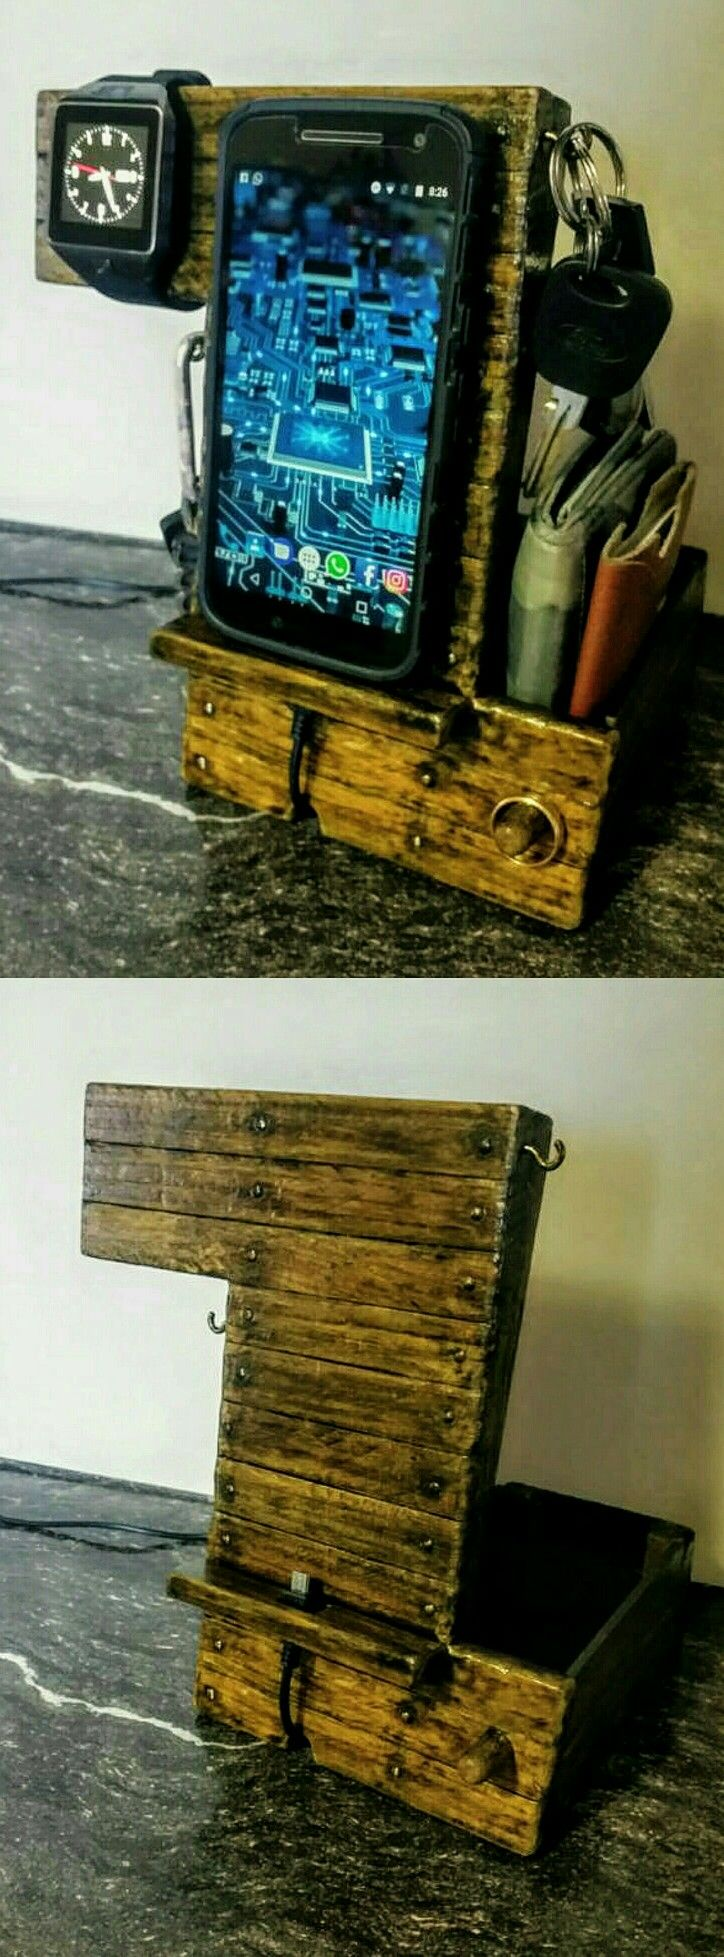 Mi estación de Carga para celular con organizador para Reloj inteligente, llaves, anillo y billetera, hecho por mí de Madera reciclada. Docking charger station smartphone, keys holder, smartwatch, wallet organizer, for men, wood.